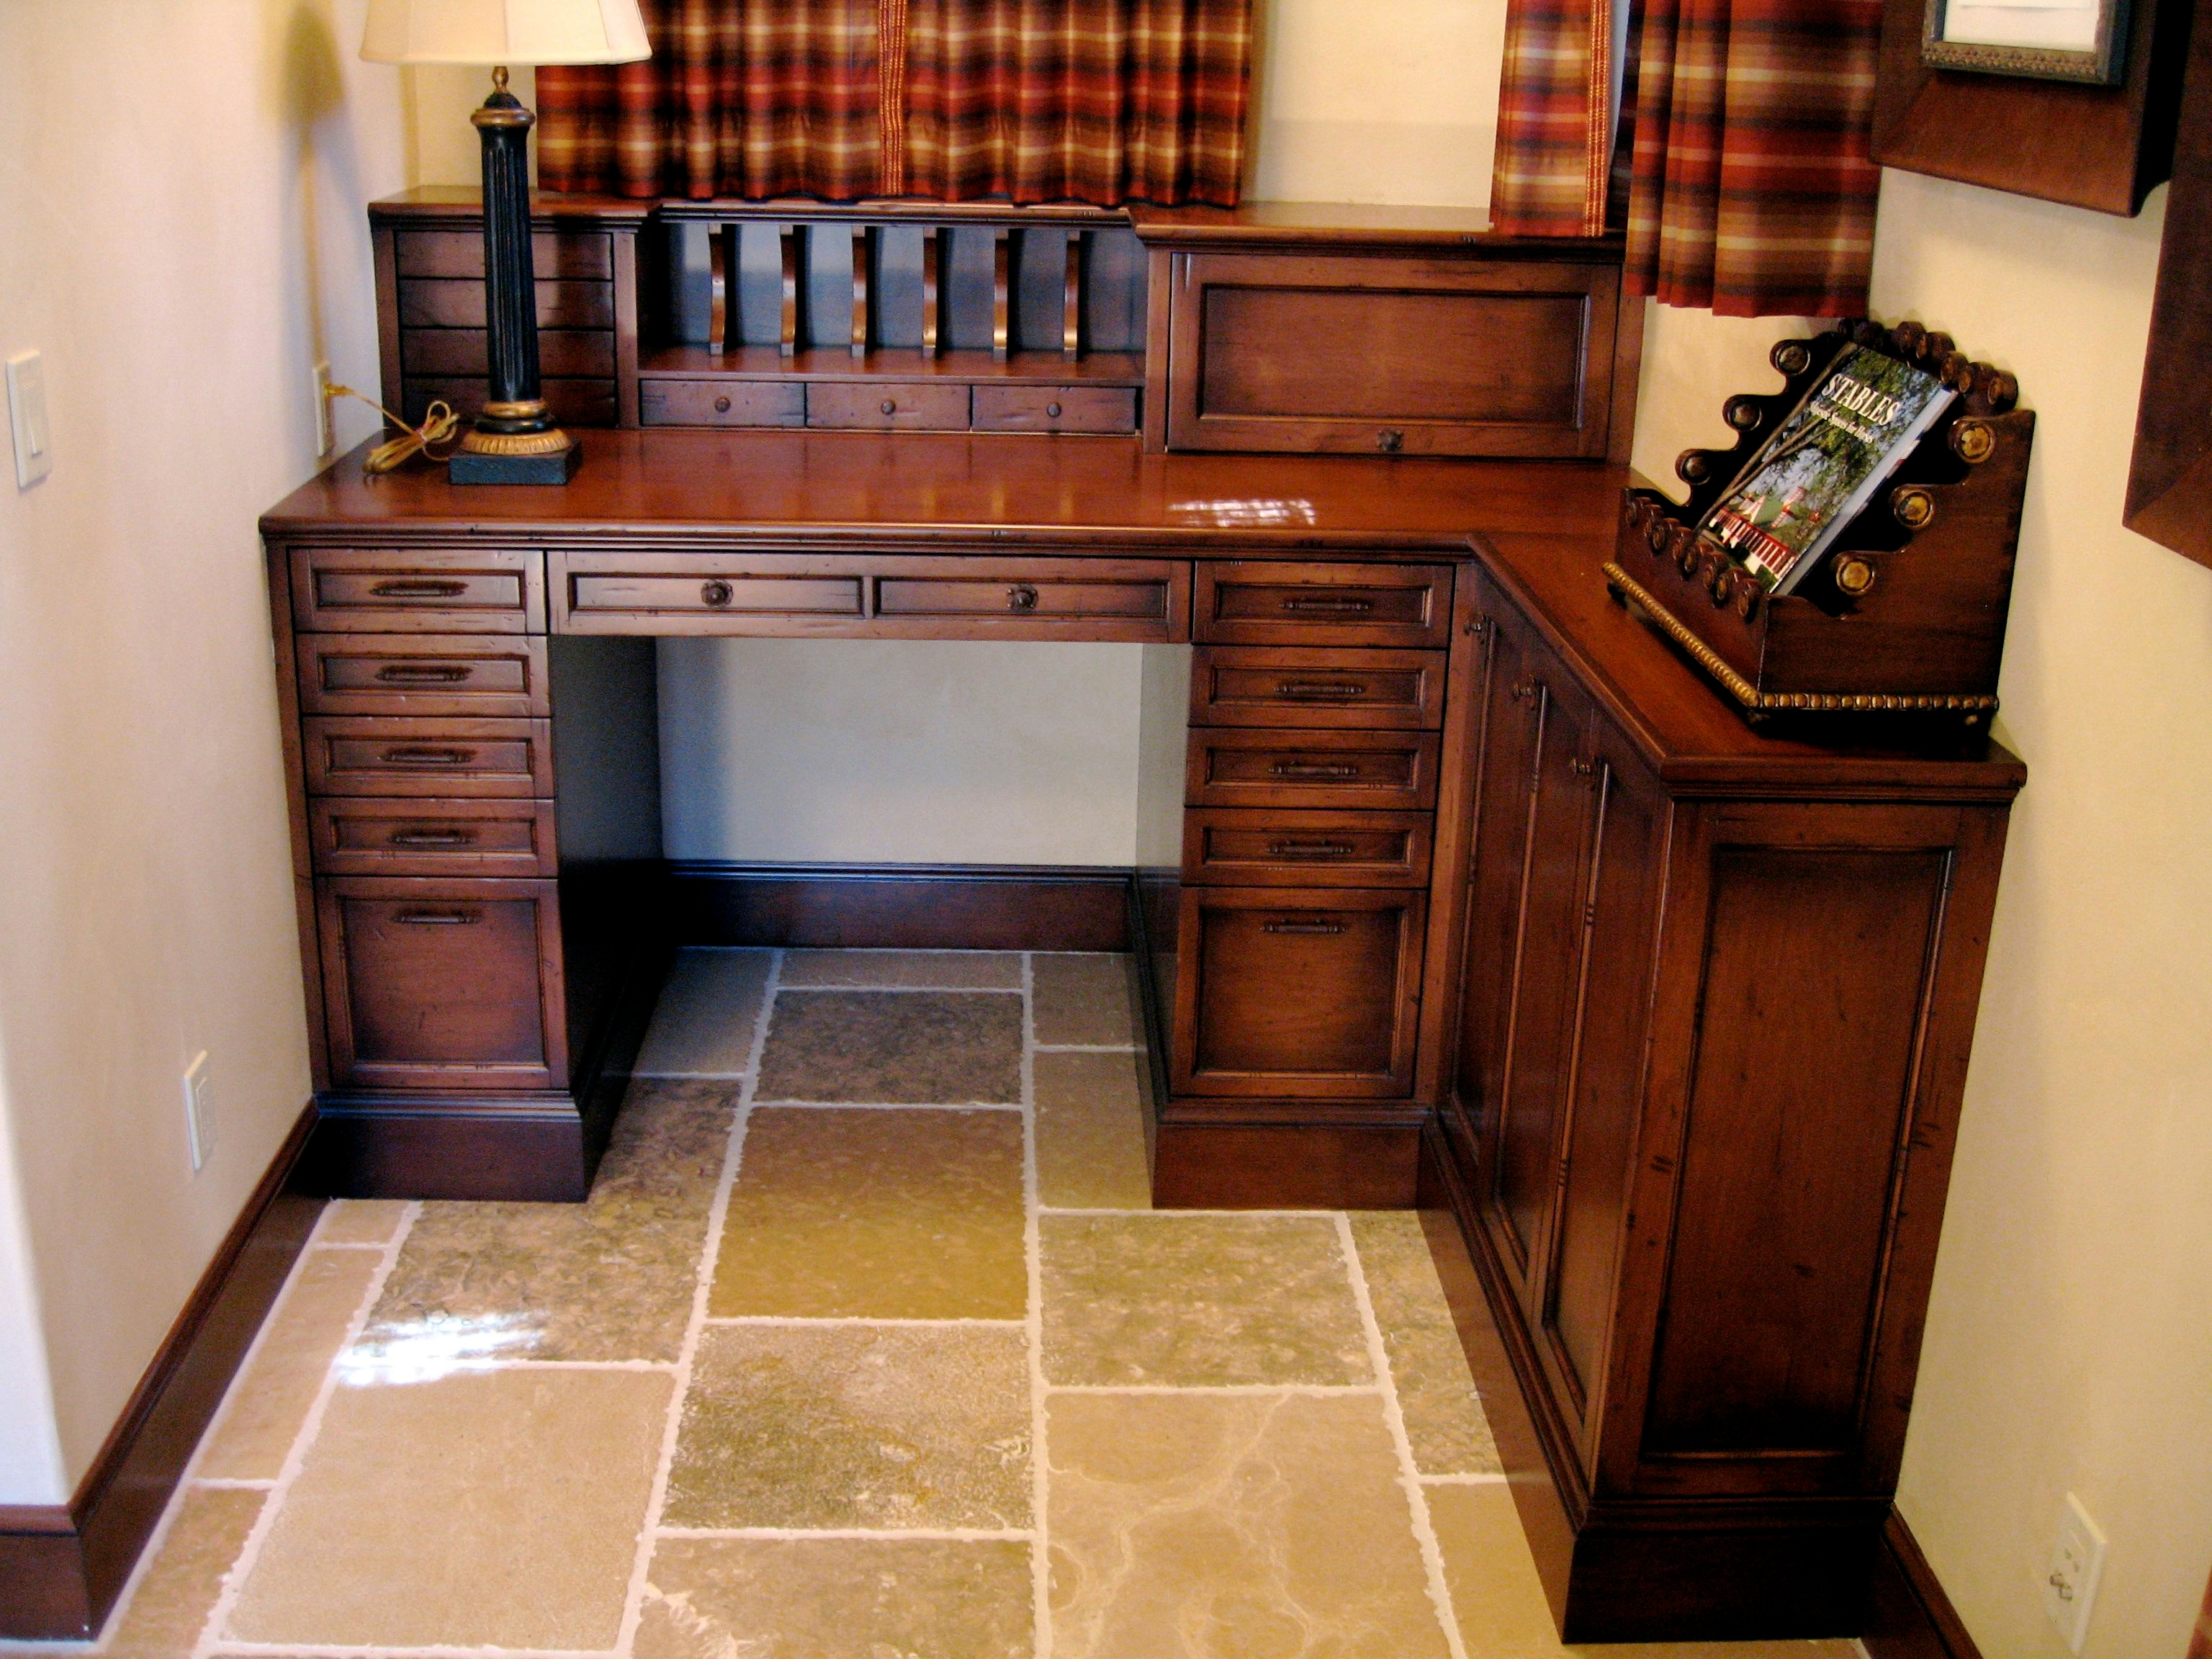 Custom built in bureau in distressed Alder, handcrafted by Philip Snyder of PS Woodworking offers function and elegance to an office.